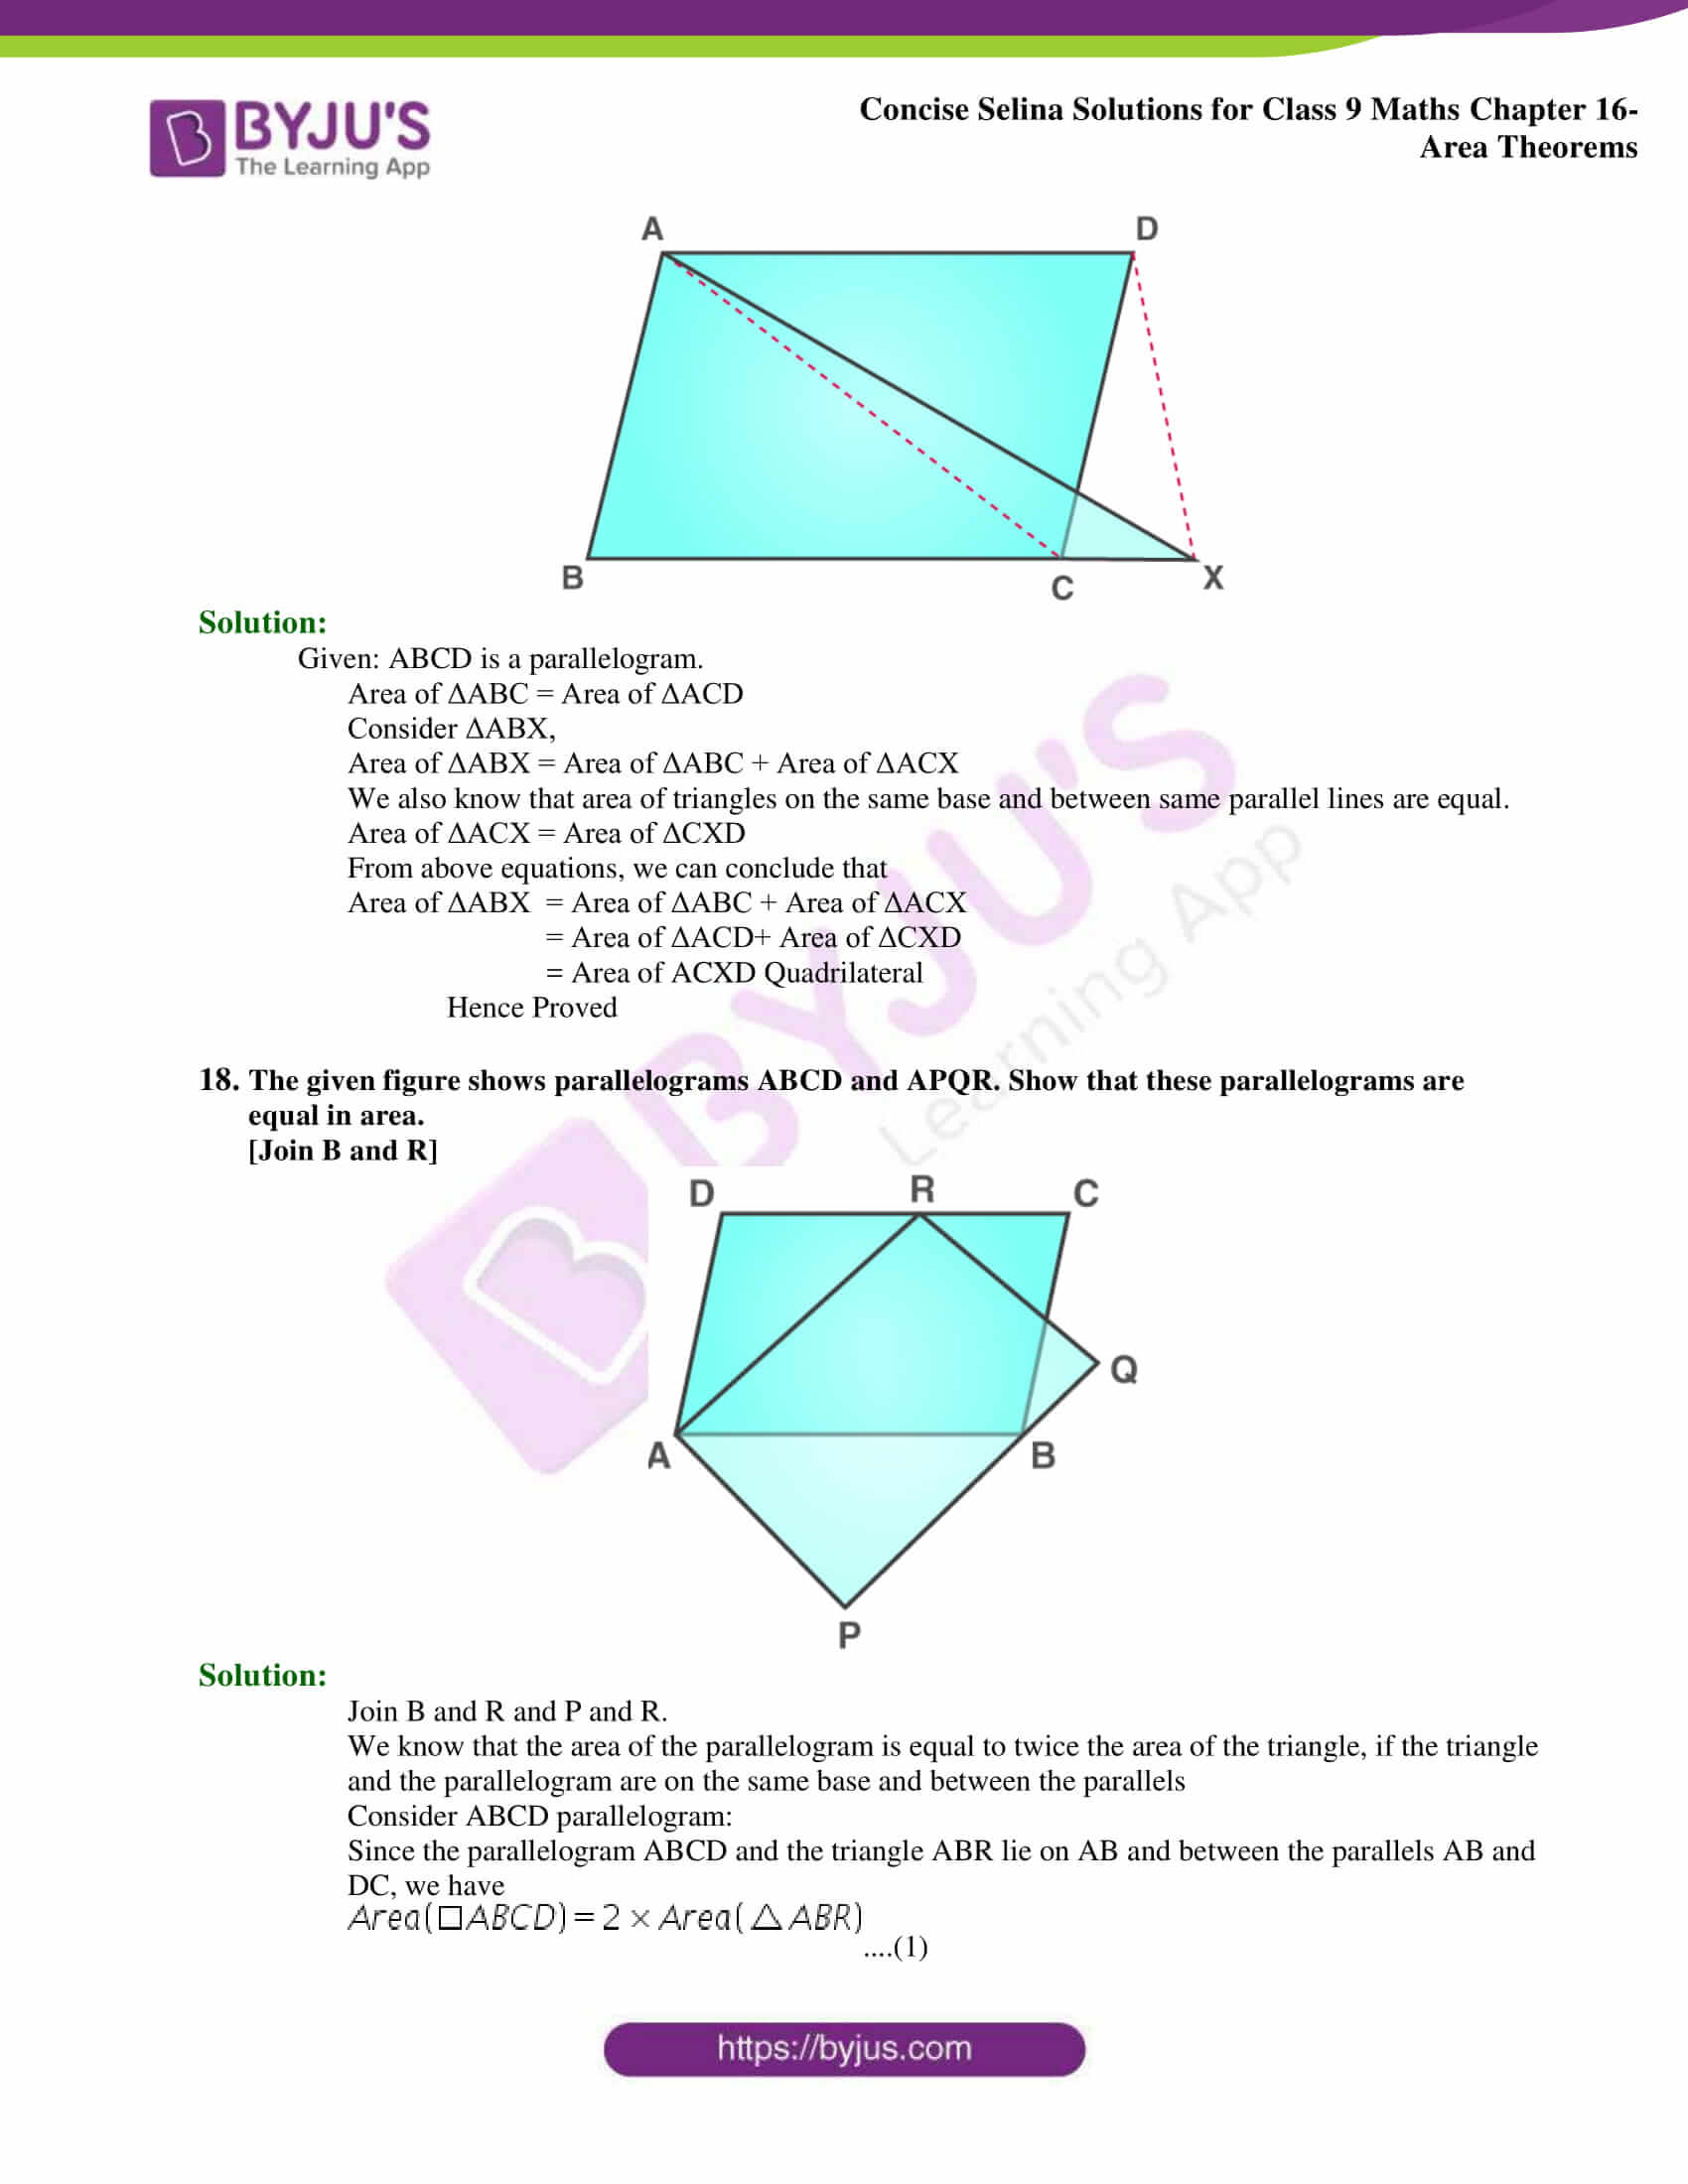 Concise Selina Solutions Class 9 Maths Chapter 16 Area Theorems part 14